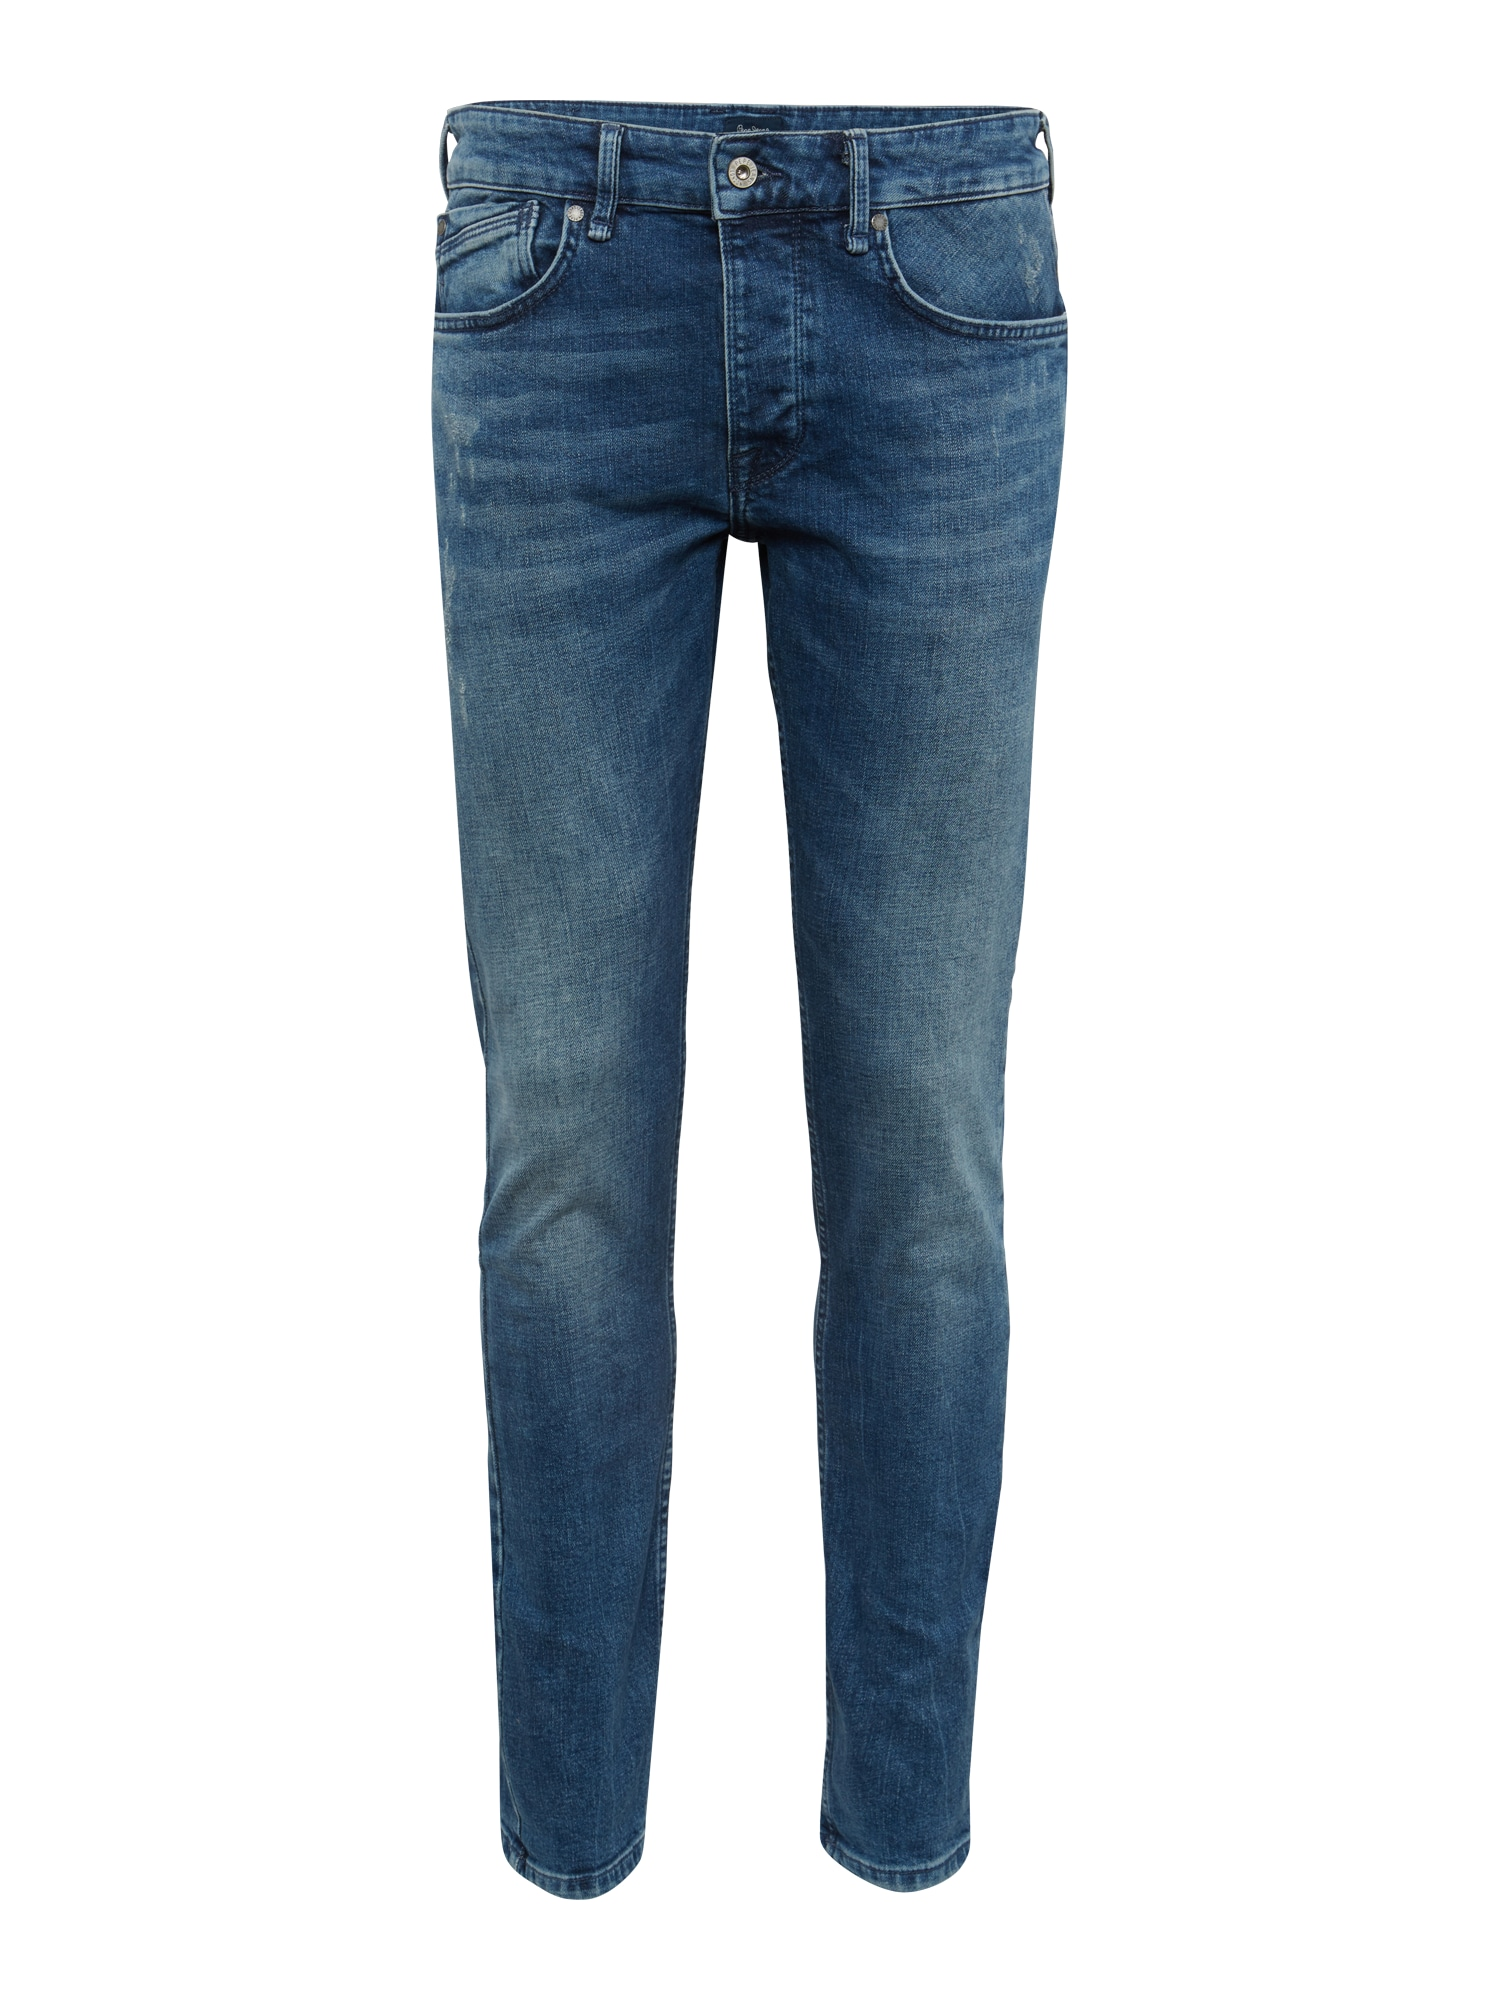 Pepe Jeans Heren Jeans ZINC URBAN DARK blue denim